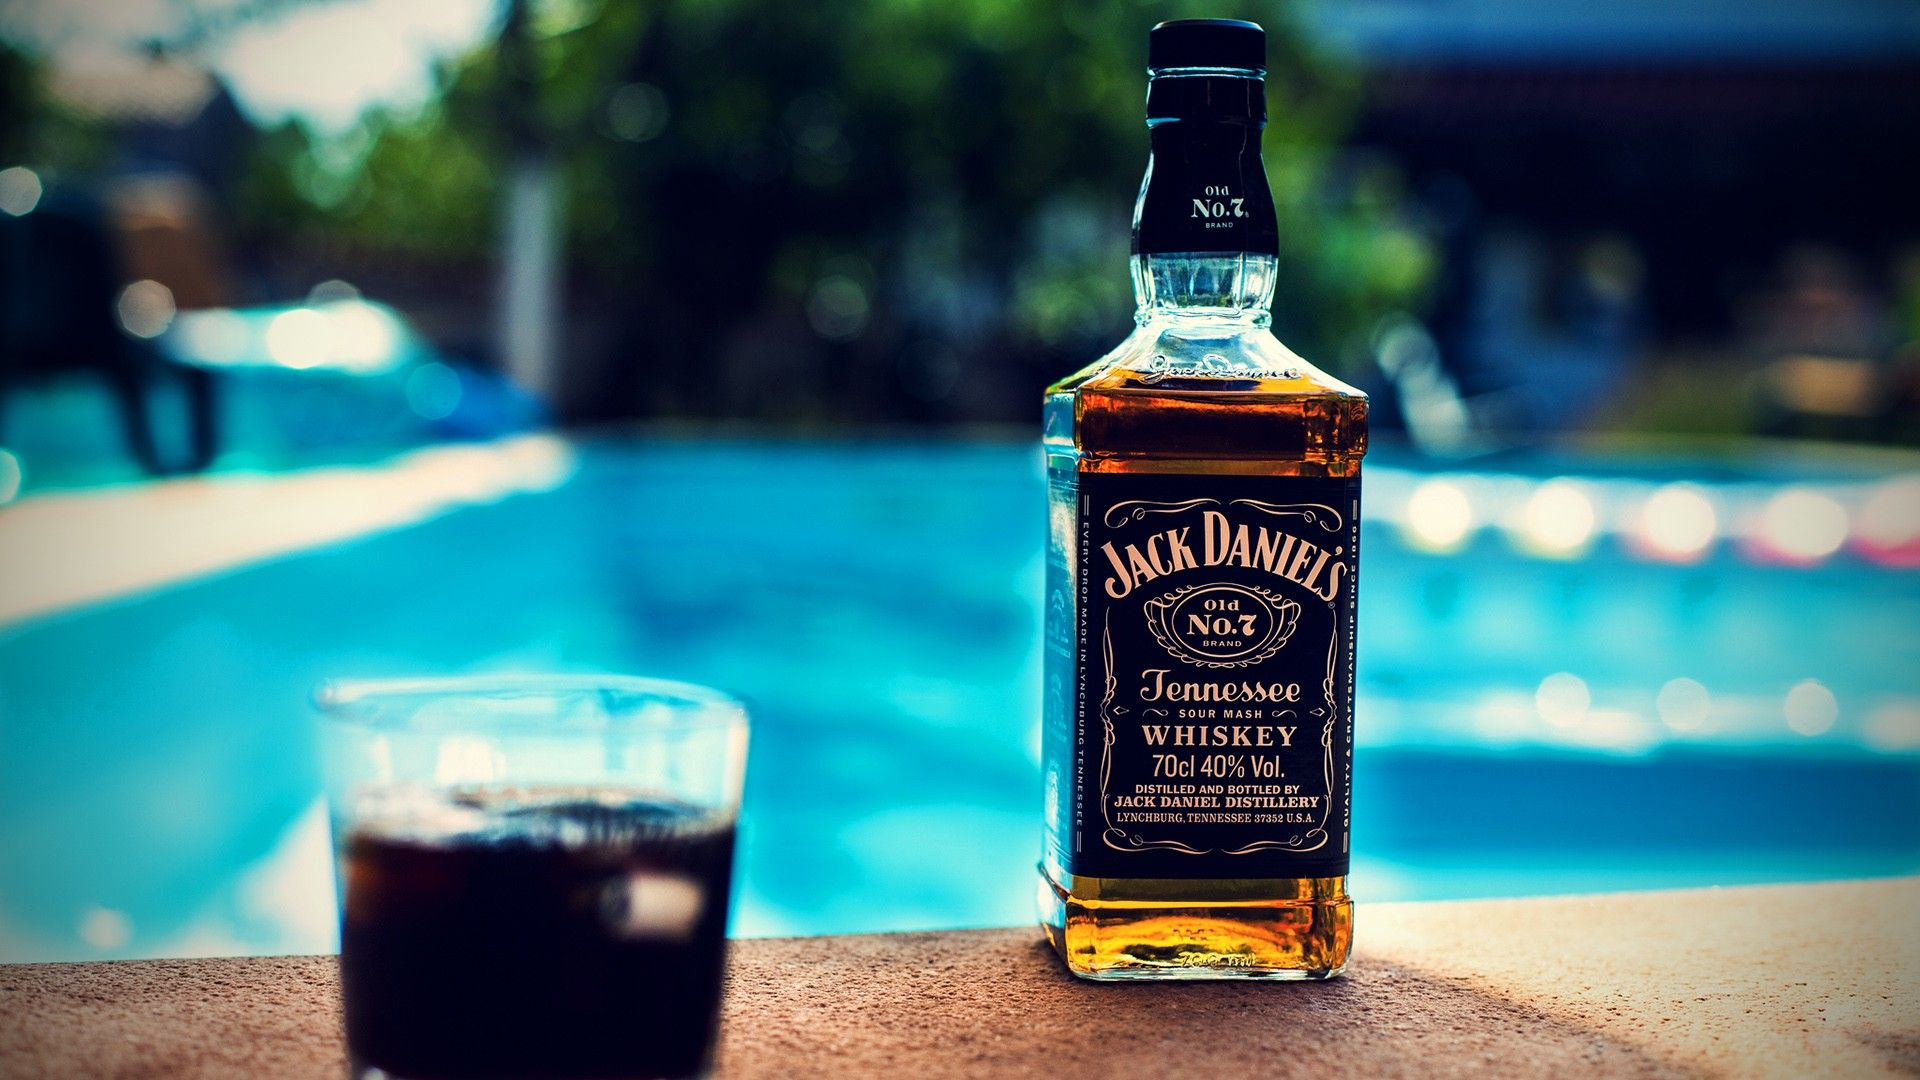 Jack Daniel S Jack Daniels Jack Daniels Wallpaper Jack Daniel S Tennessee Whiskey